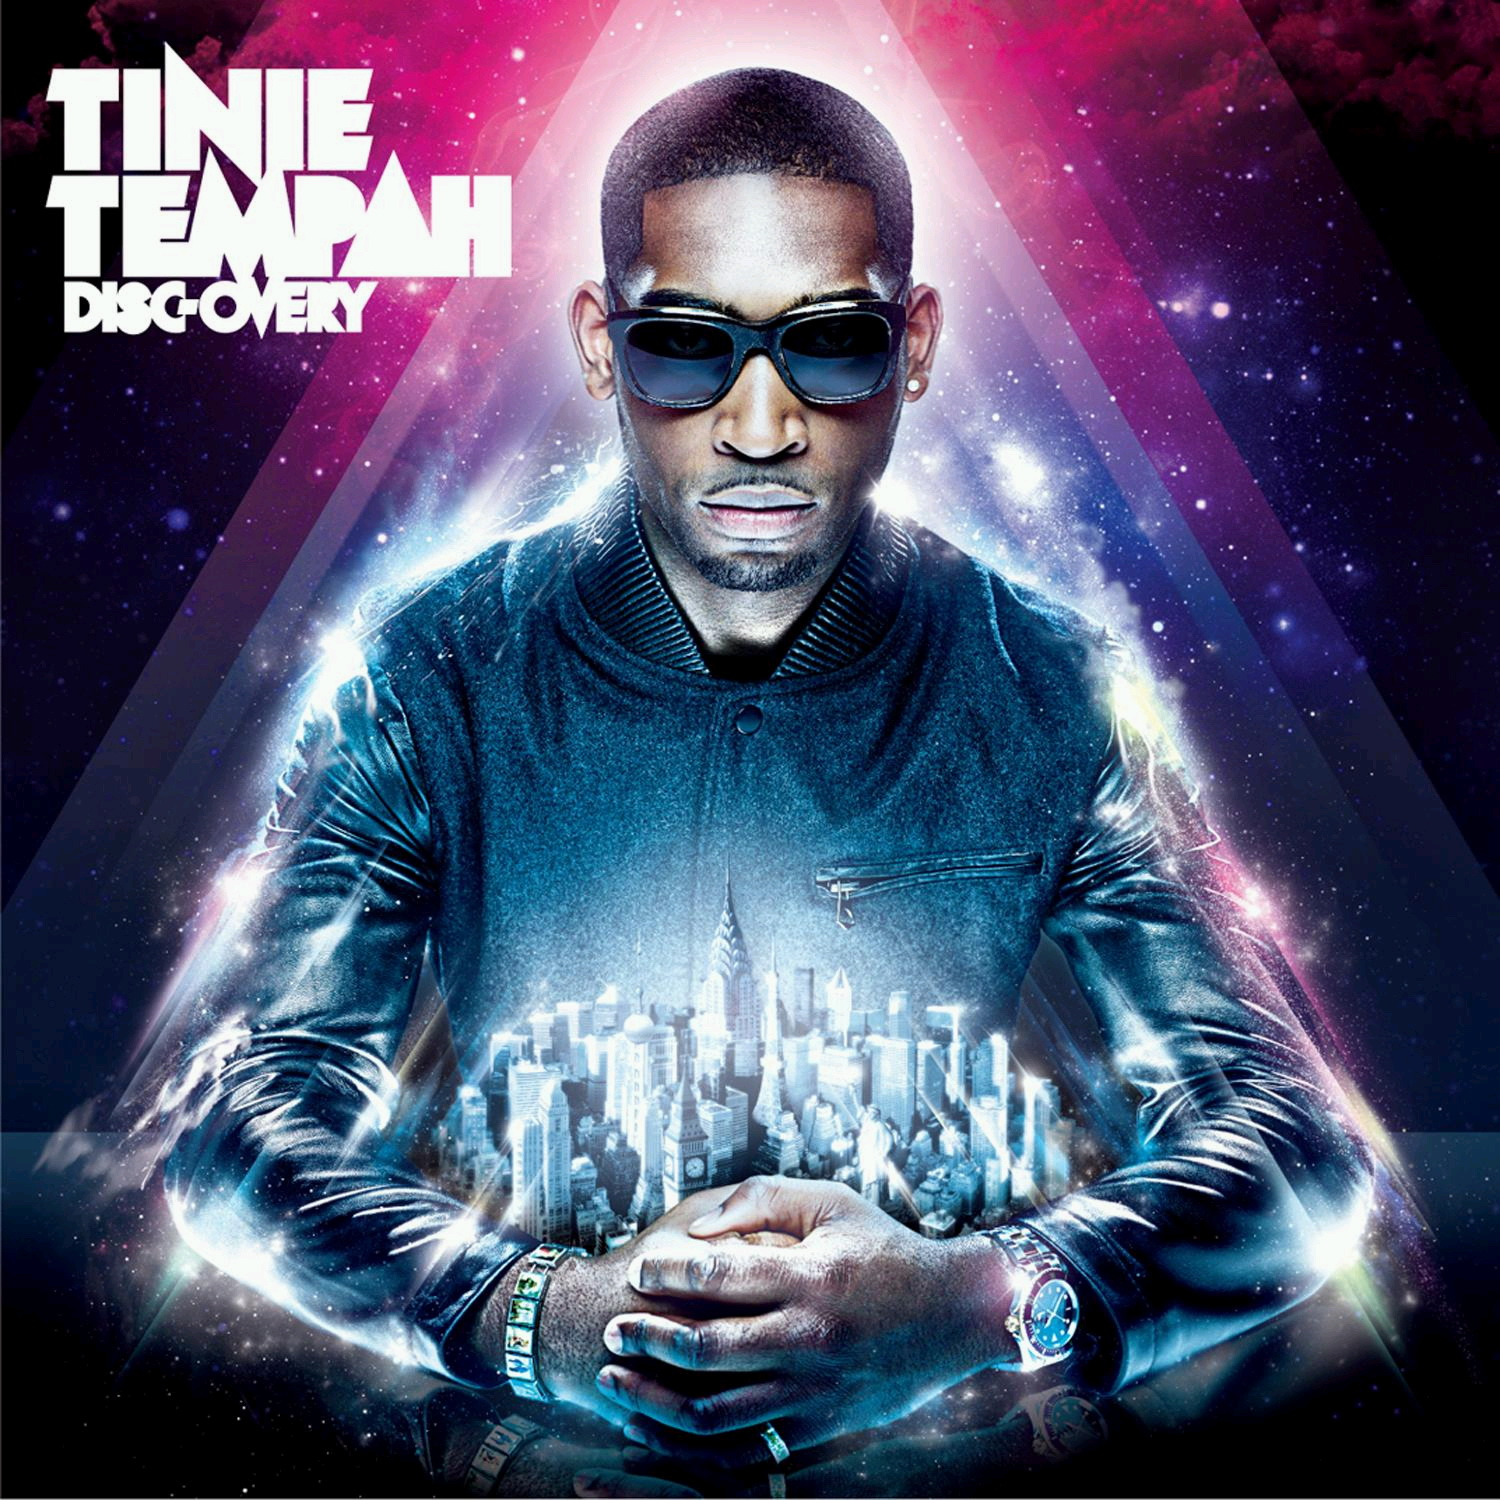 [10's] Tinie Tempah feat. Eric Turner - Written In The Stars (2011) Tinie%20Tempah%20-%20Disc%20Overy